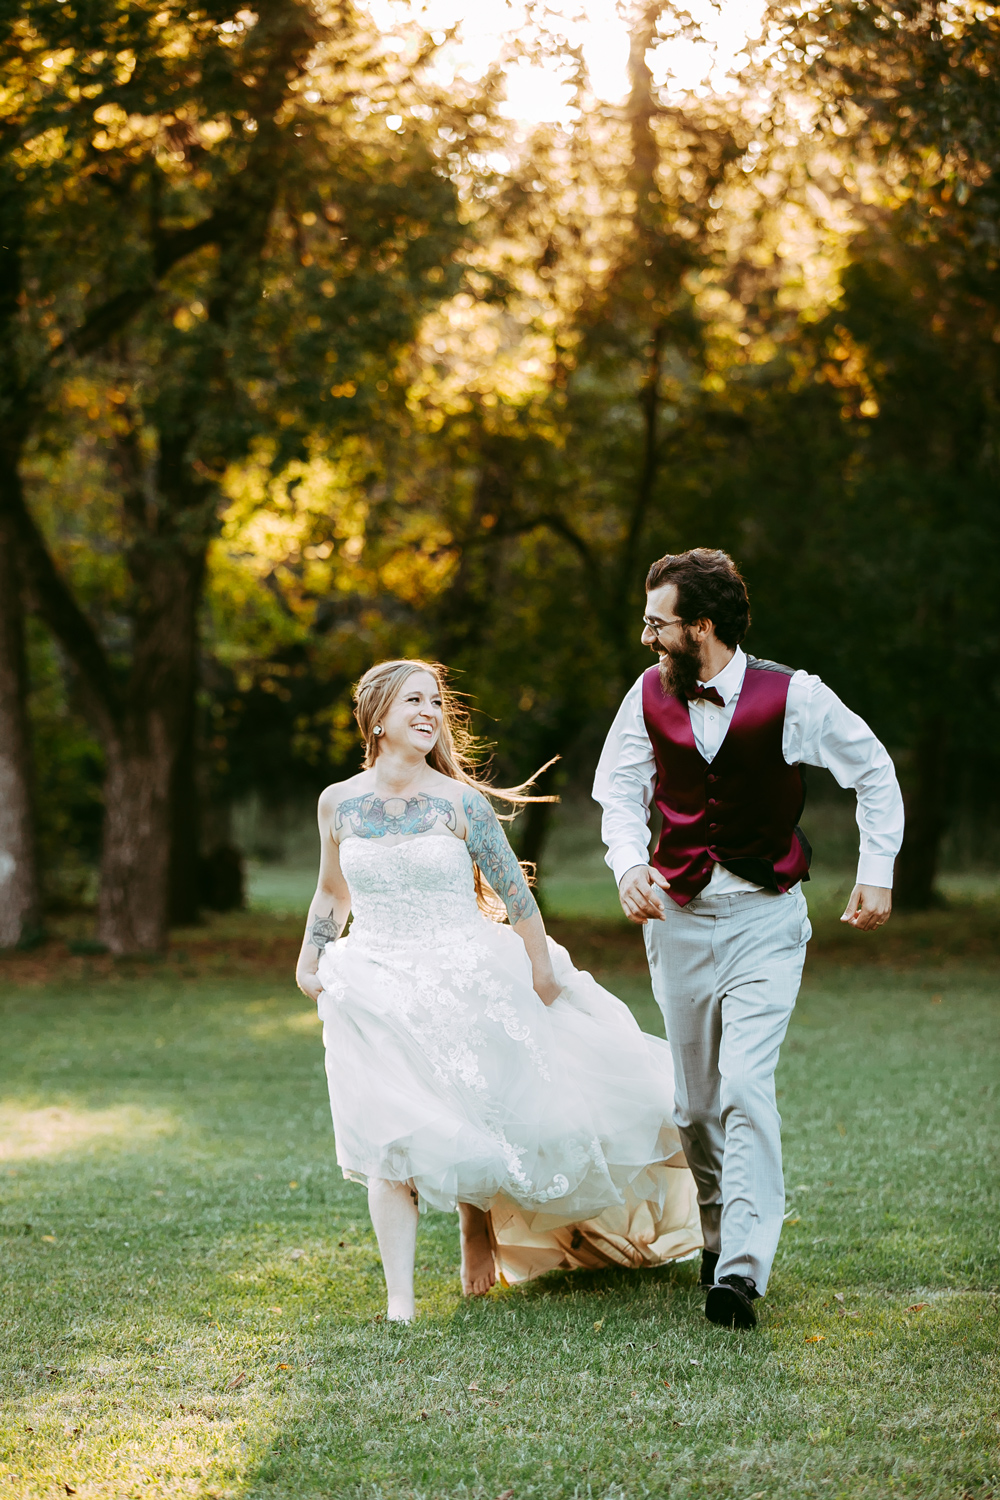 Fun wedding image of bride and groom running while looking at one another at the Ranch of the Saints in Oklahoma, photo by Amanda Lynn.